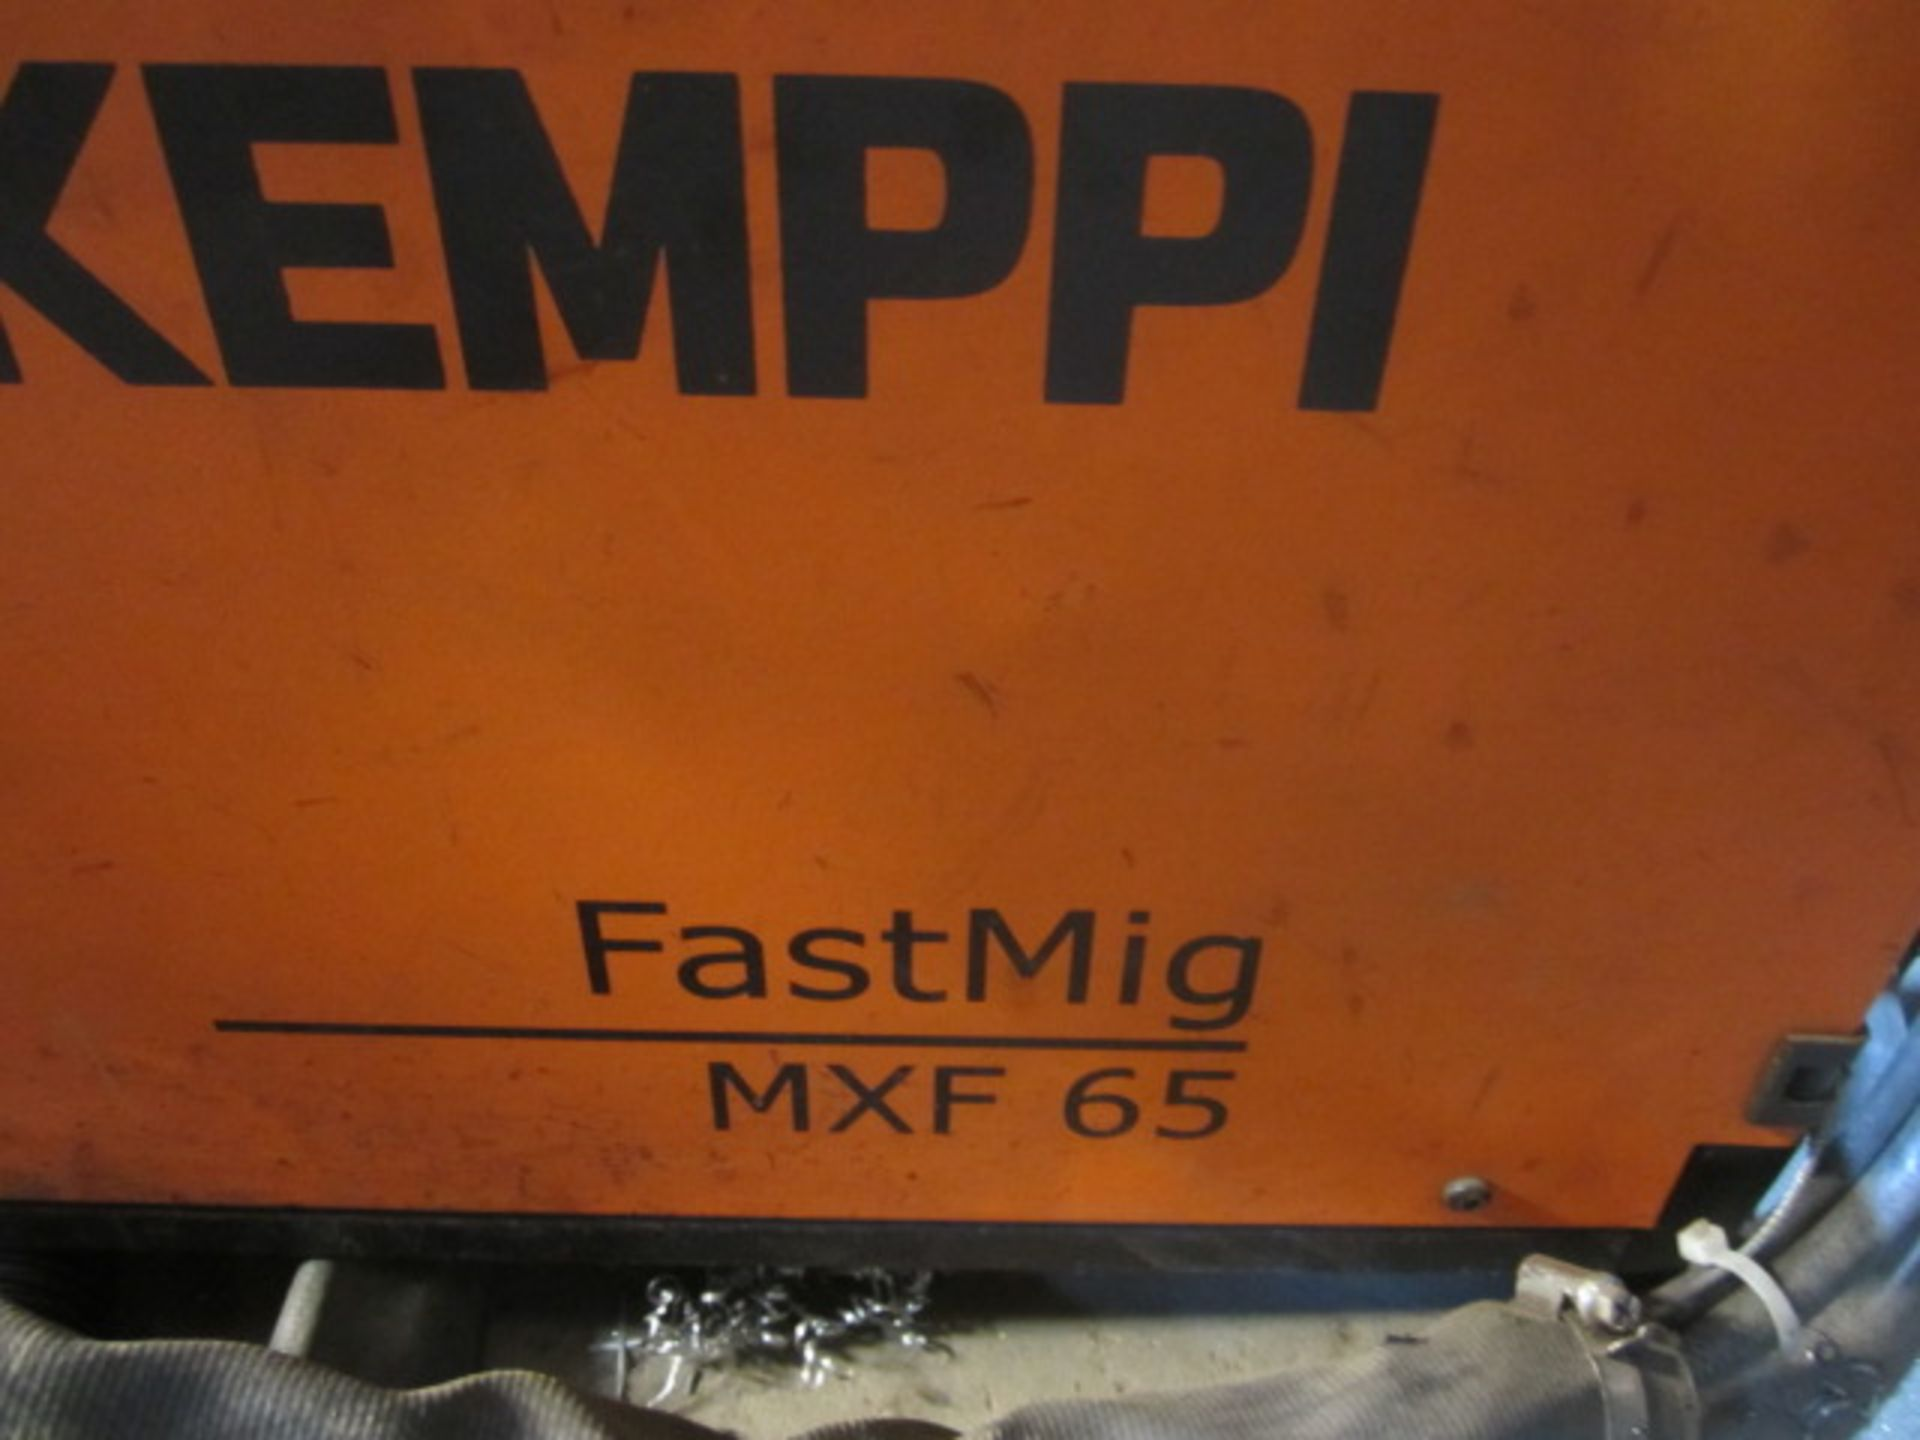 Kemppi Fast Mig M420 mig welder, serial no. 2673739, with Fast Mig MXF65 wire feeder, serial no. - Image 4 of 8